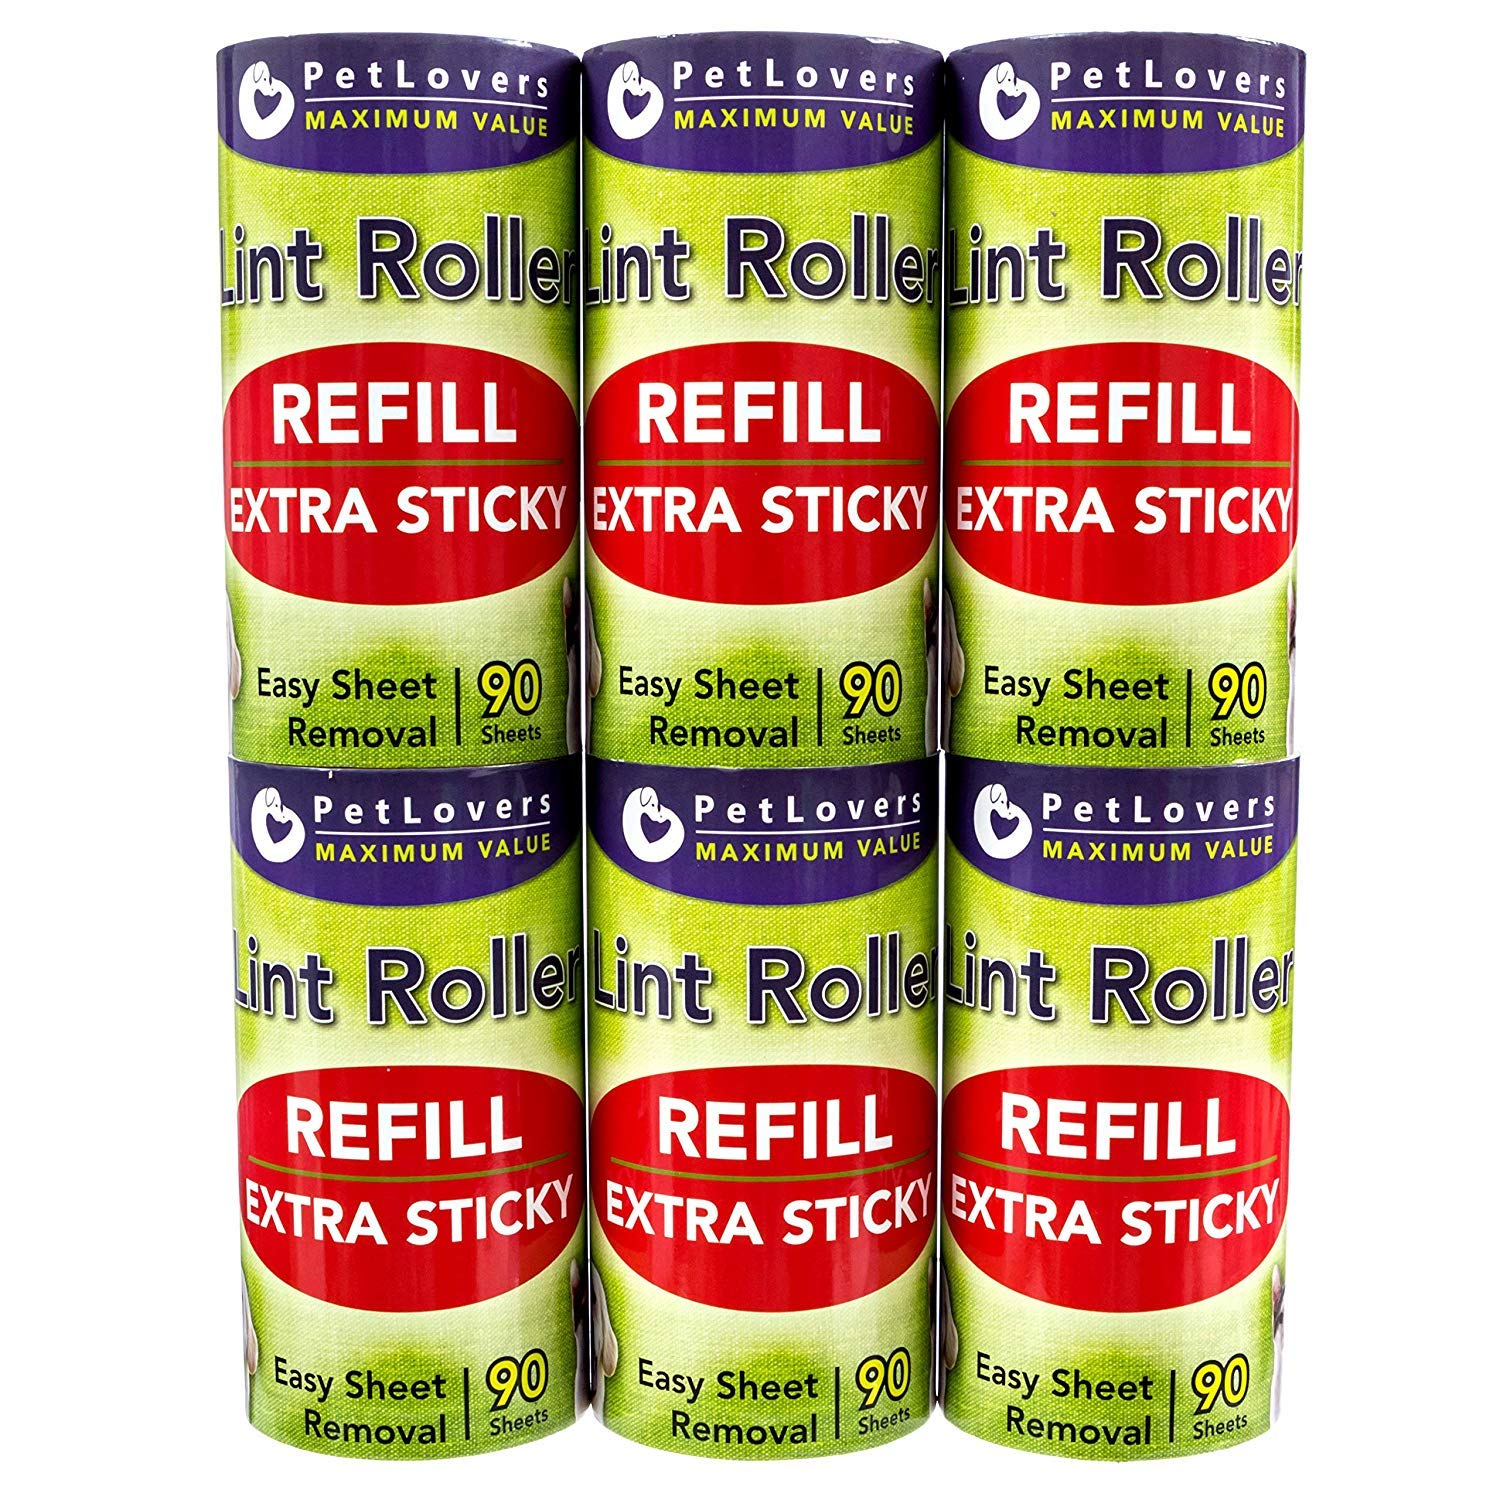 PetLovers Lint Roller Refills - 540 Sheets, Extra Sticky Sheets for Pet Hair, Lint Remover, and Dog & Cat Hair Removal, 6 Pack of Refills